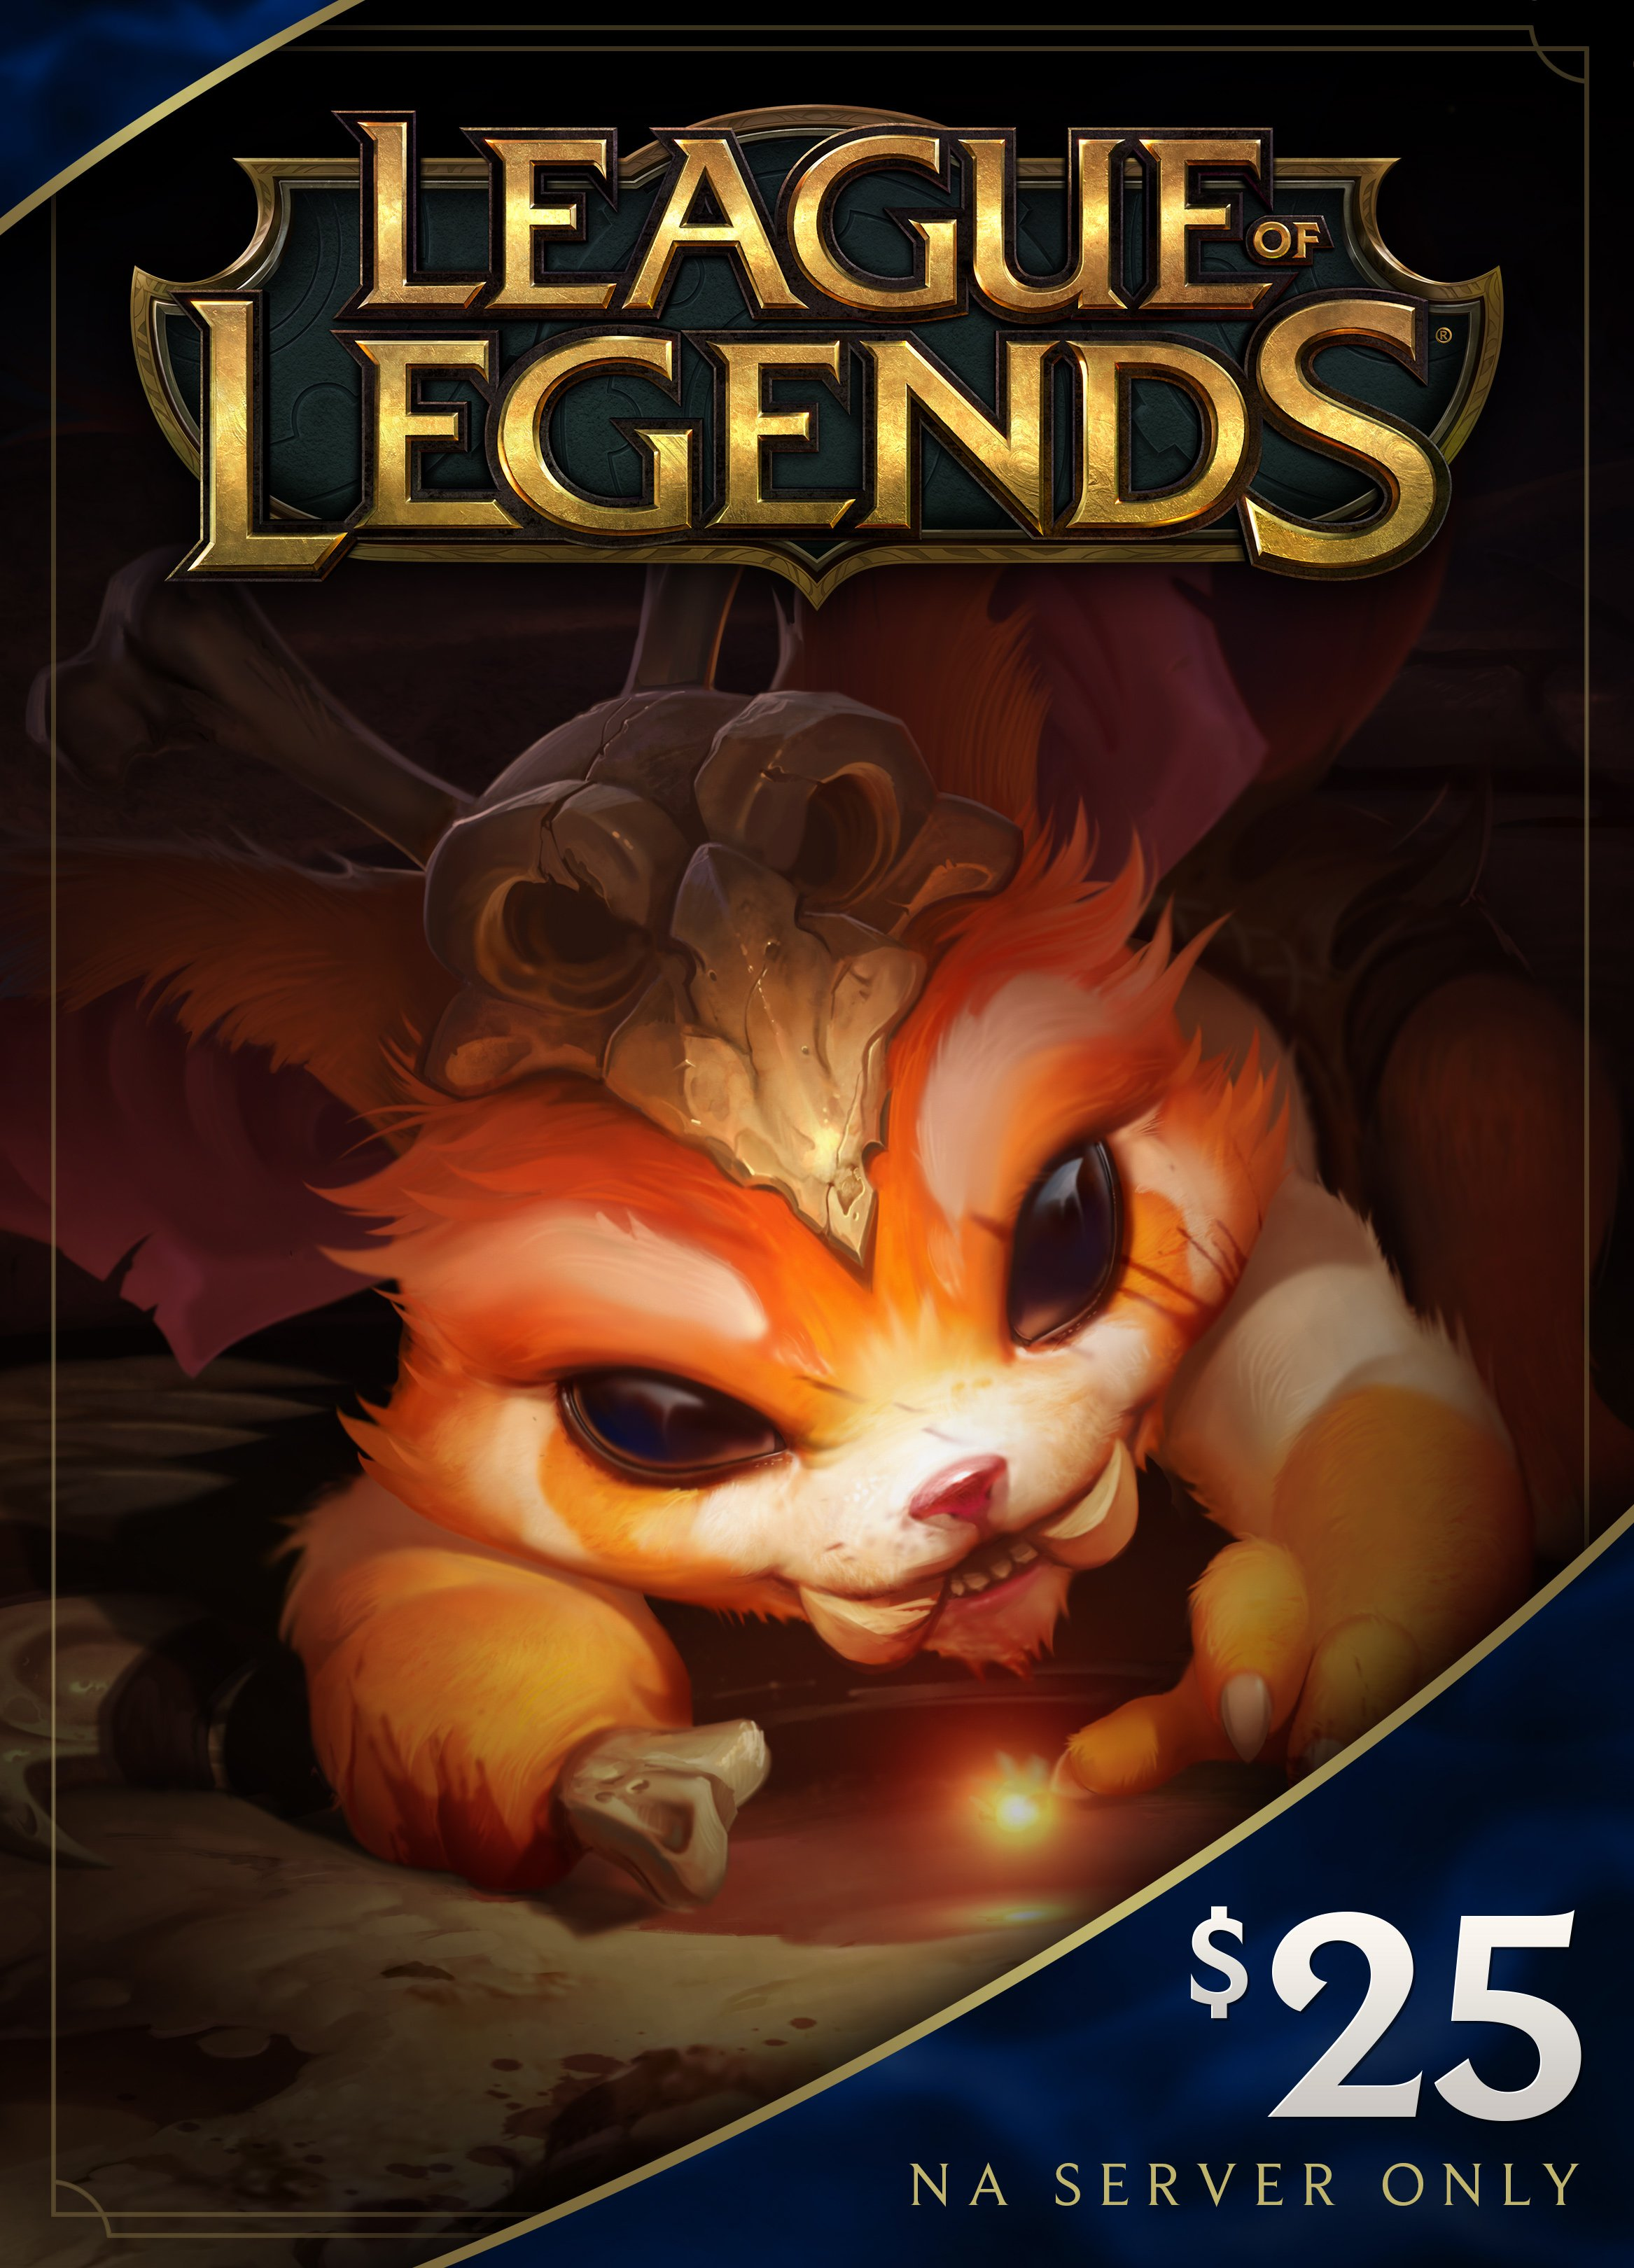 League Of Legends  25 Gift Card   3500 Riot Points   Na Server Only  Online Game Code